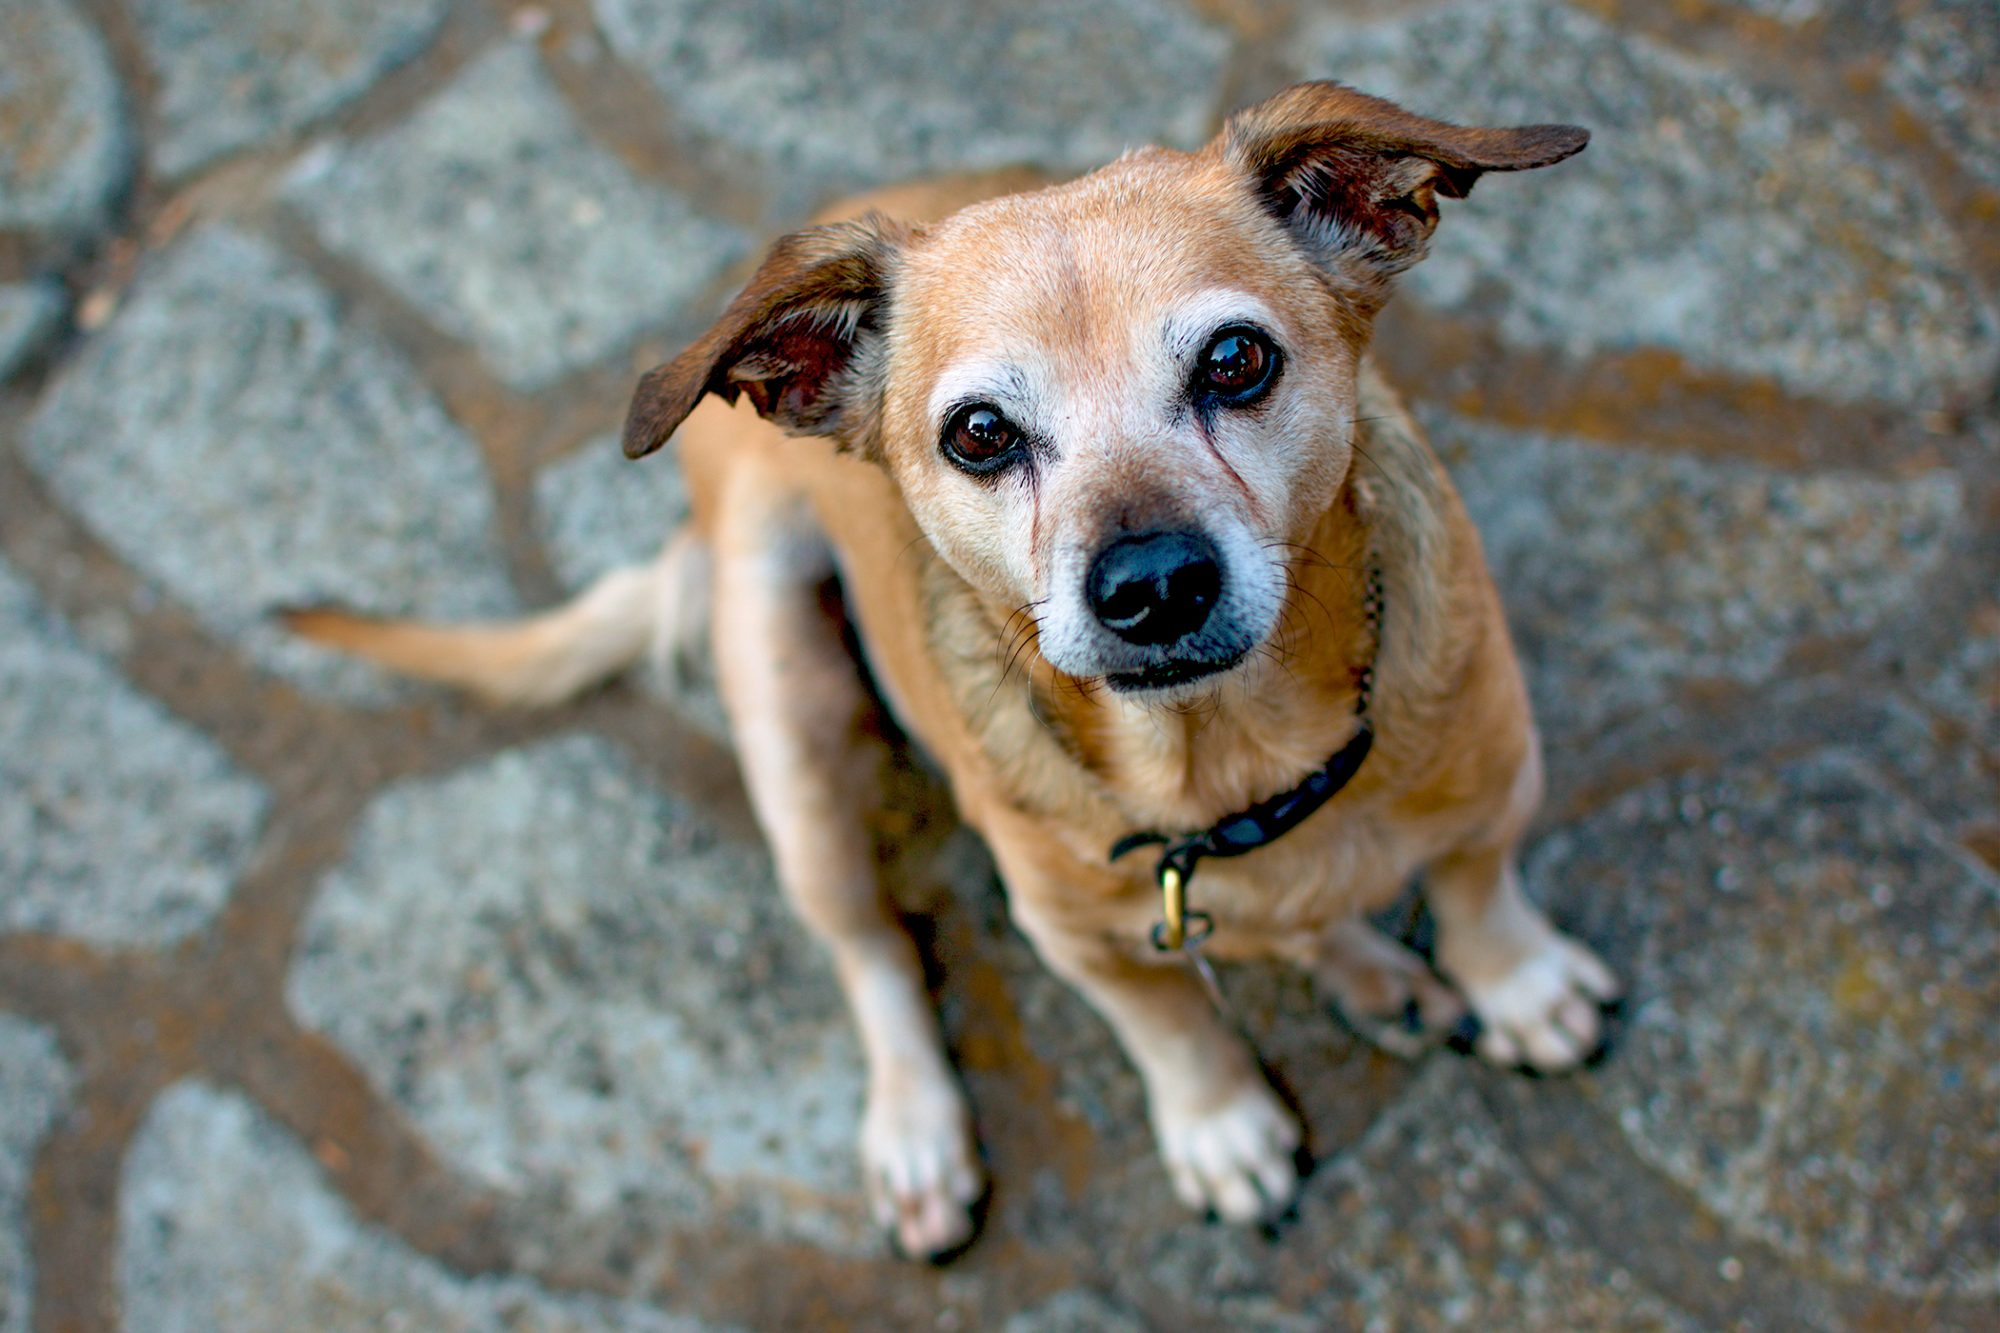 Blonde chiweenie dog sits on concrete and looks up at camera